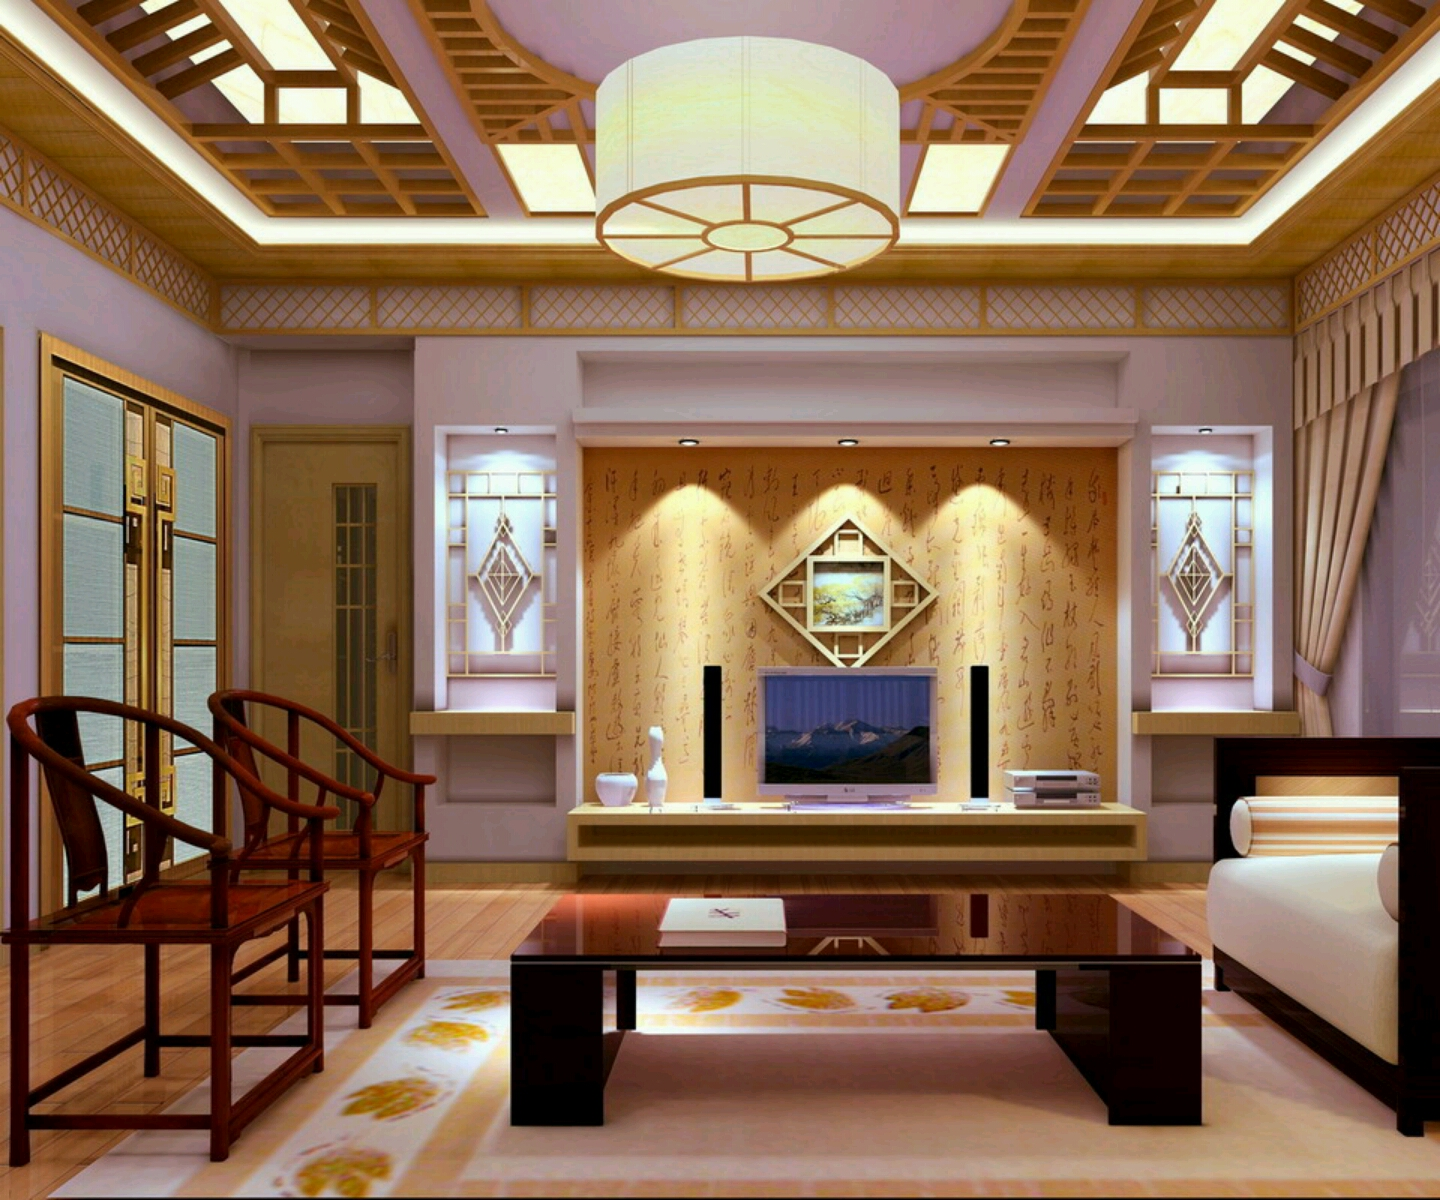 New home designs latest homes interior designs studyrooms for Home design ideas